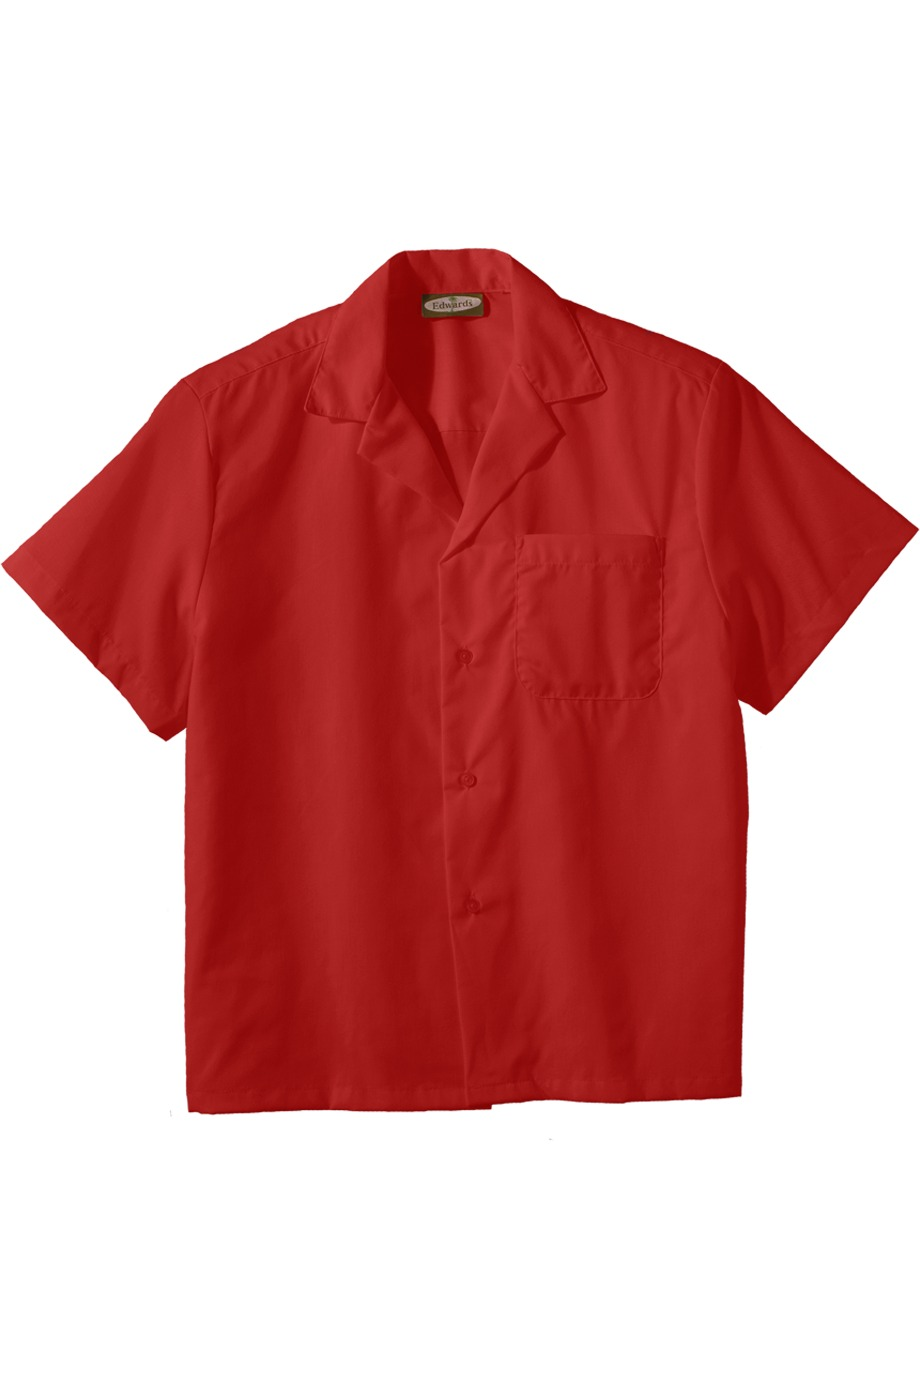 Edwards Garment 1029 - Easy Care Poplin Camp Shirt